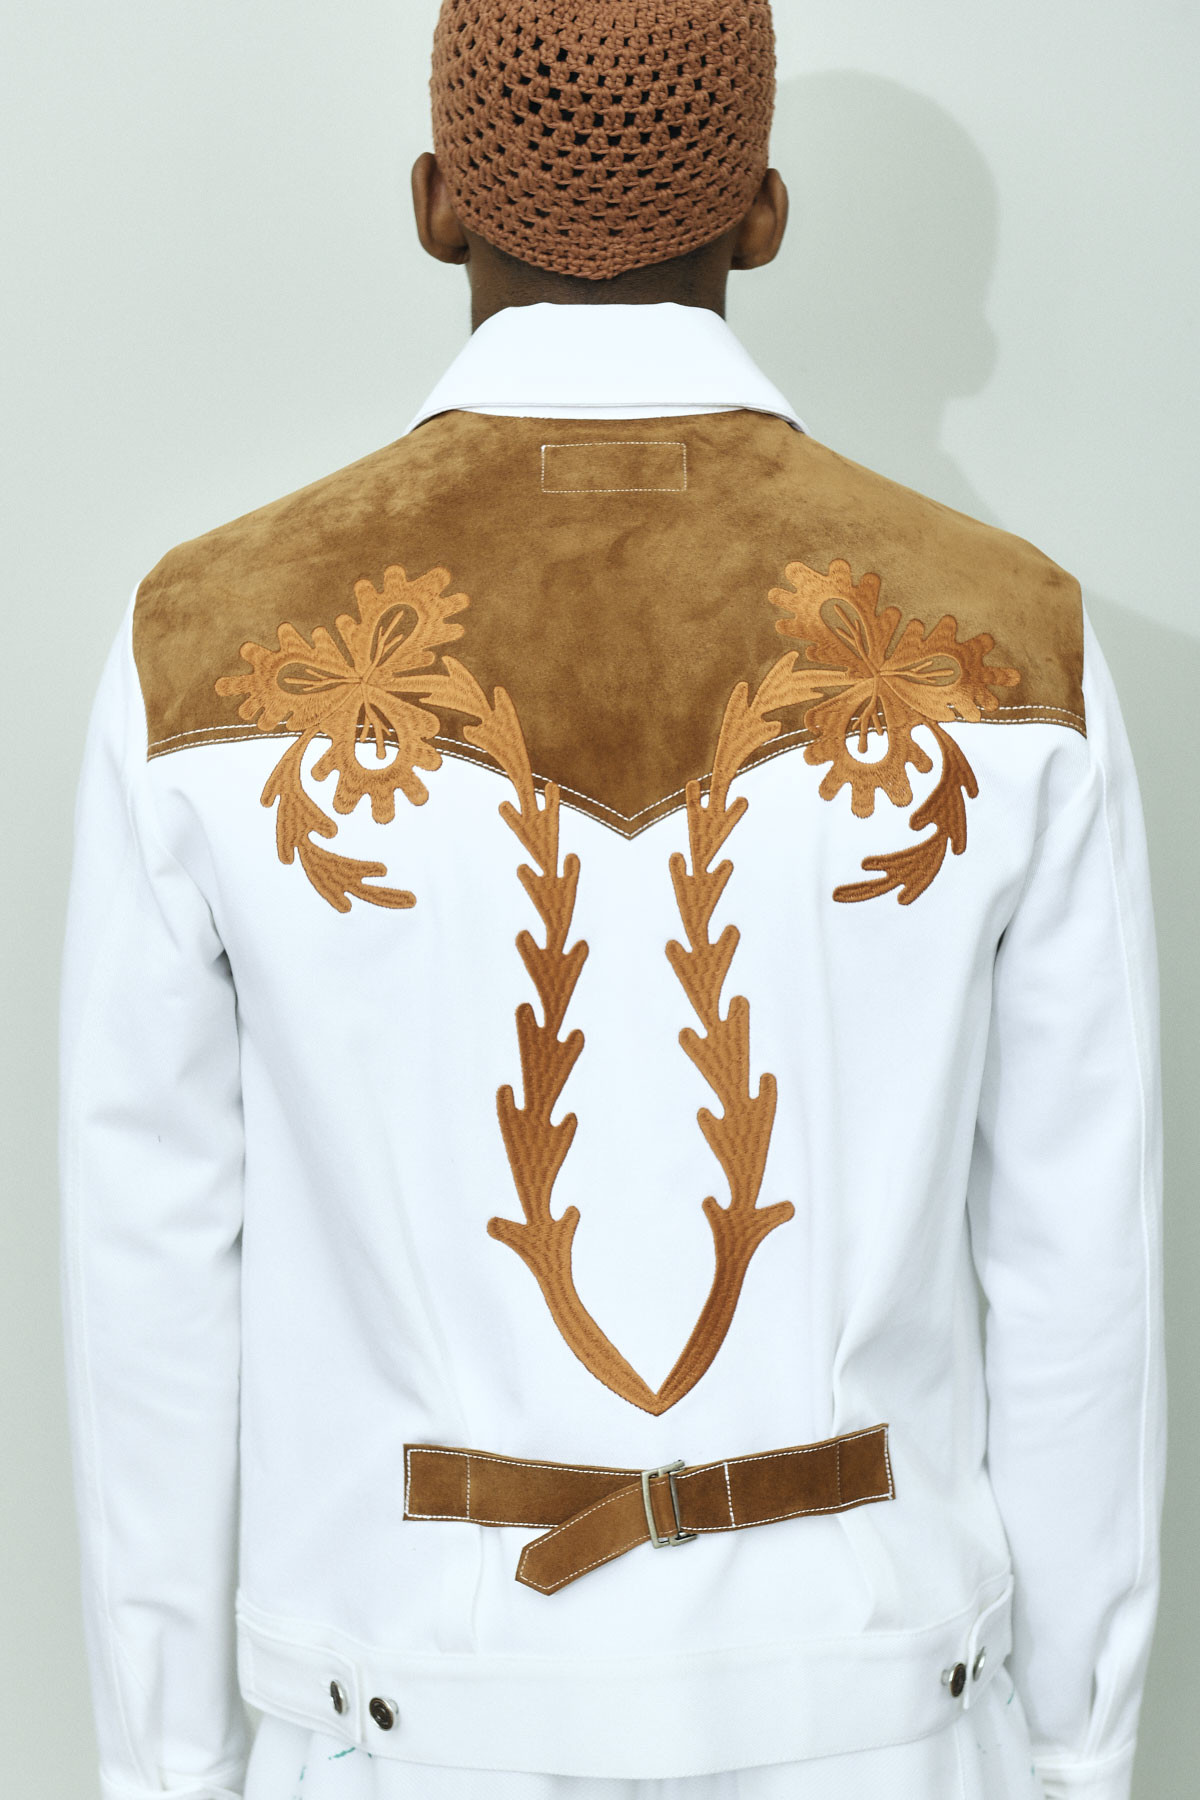 TEJANO EMBROIDERY JEANS JACKET